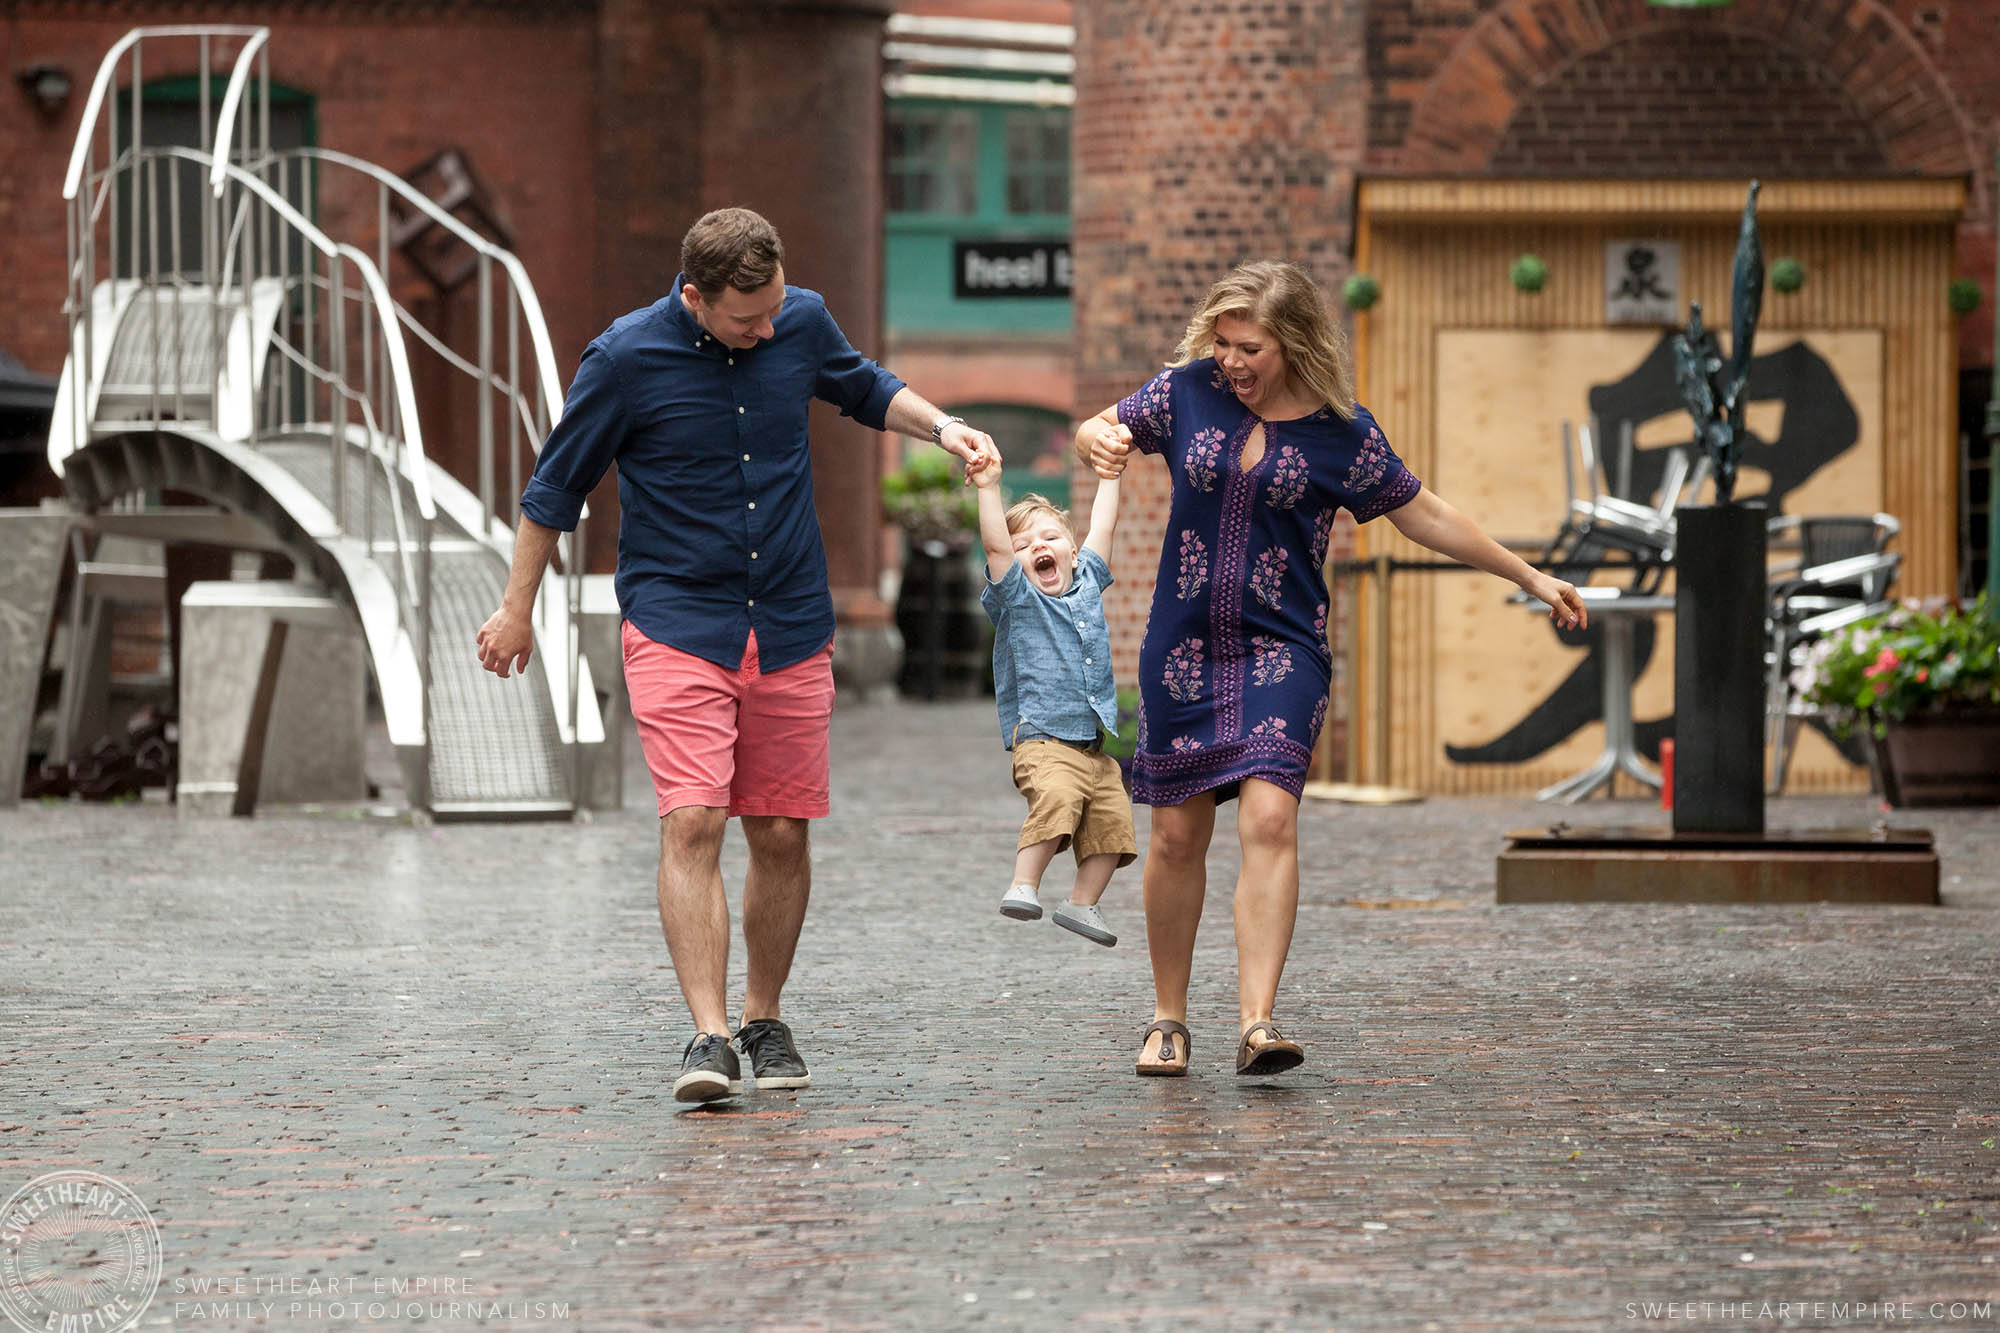 04_Laughing mom and dad swing toddler son by the arms in distillery district family session.jpg